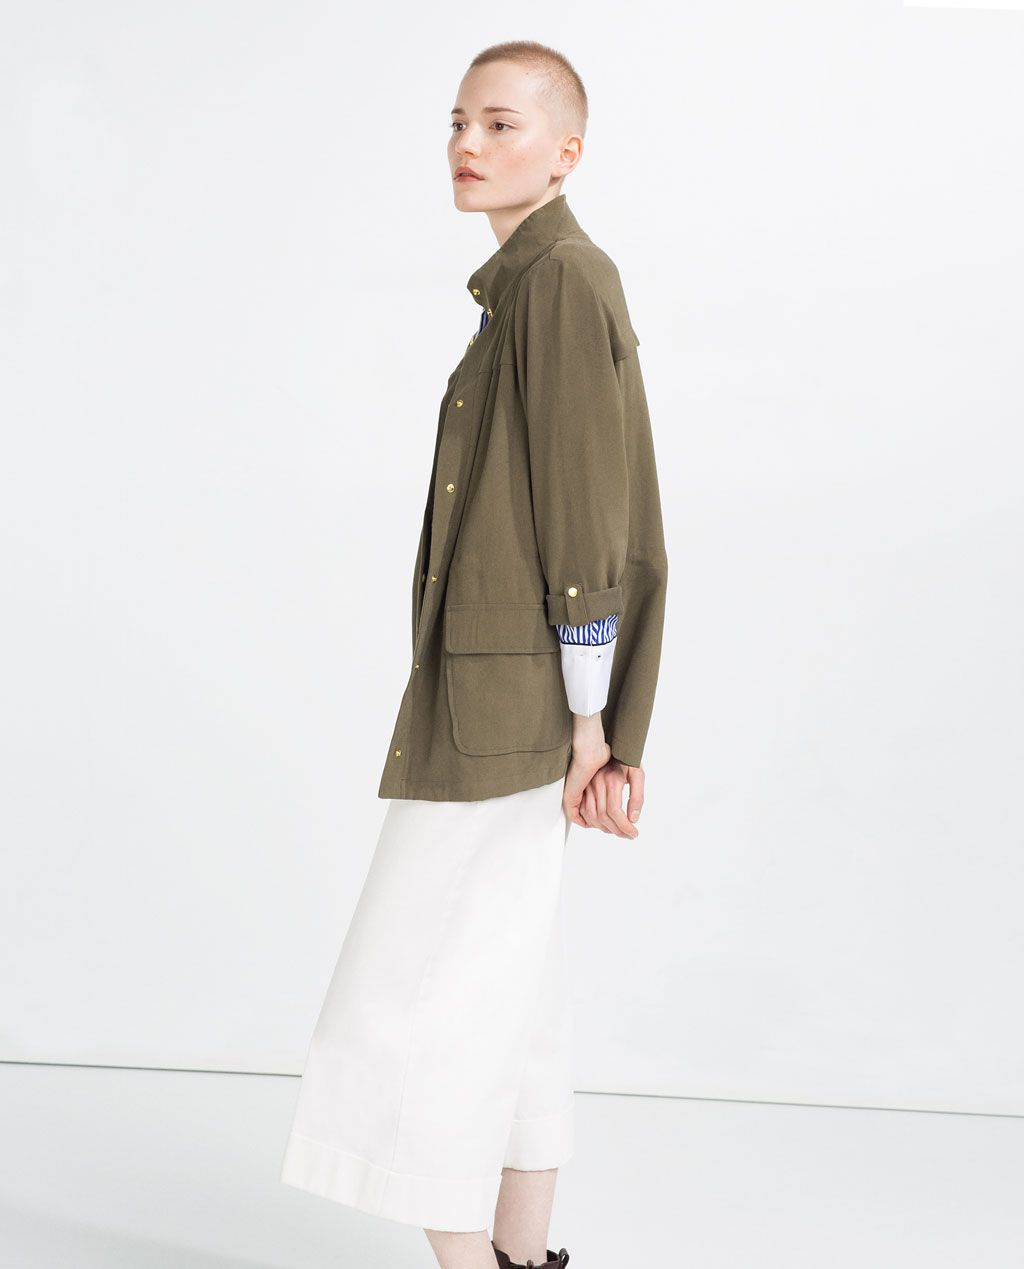 a96f4c0f SAFARI JACKET WITH HIGH NECK-Jackets-OUTERWEAR-WOMAN-SALE | ZARA United  States